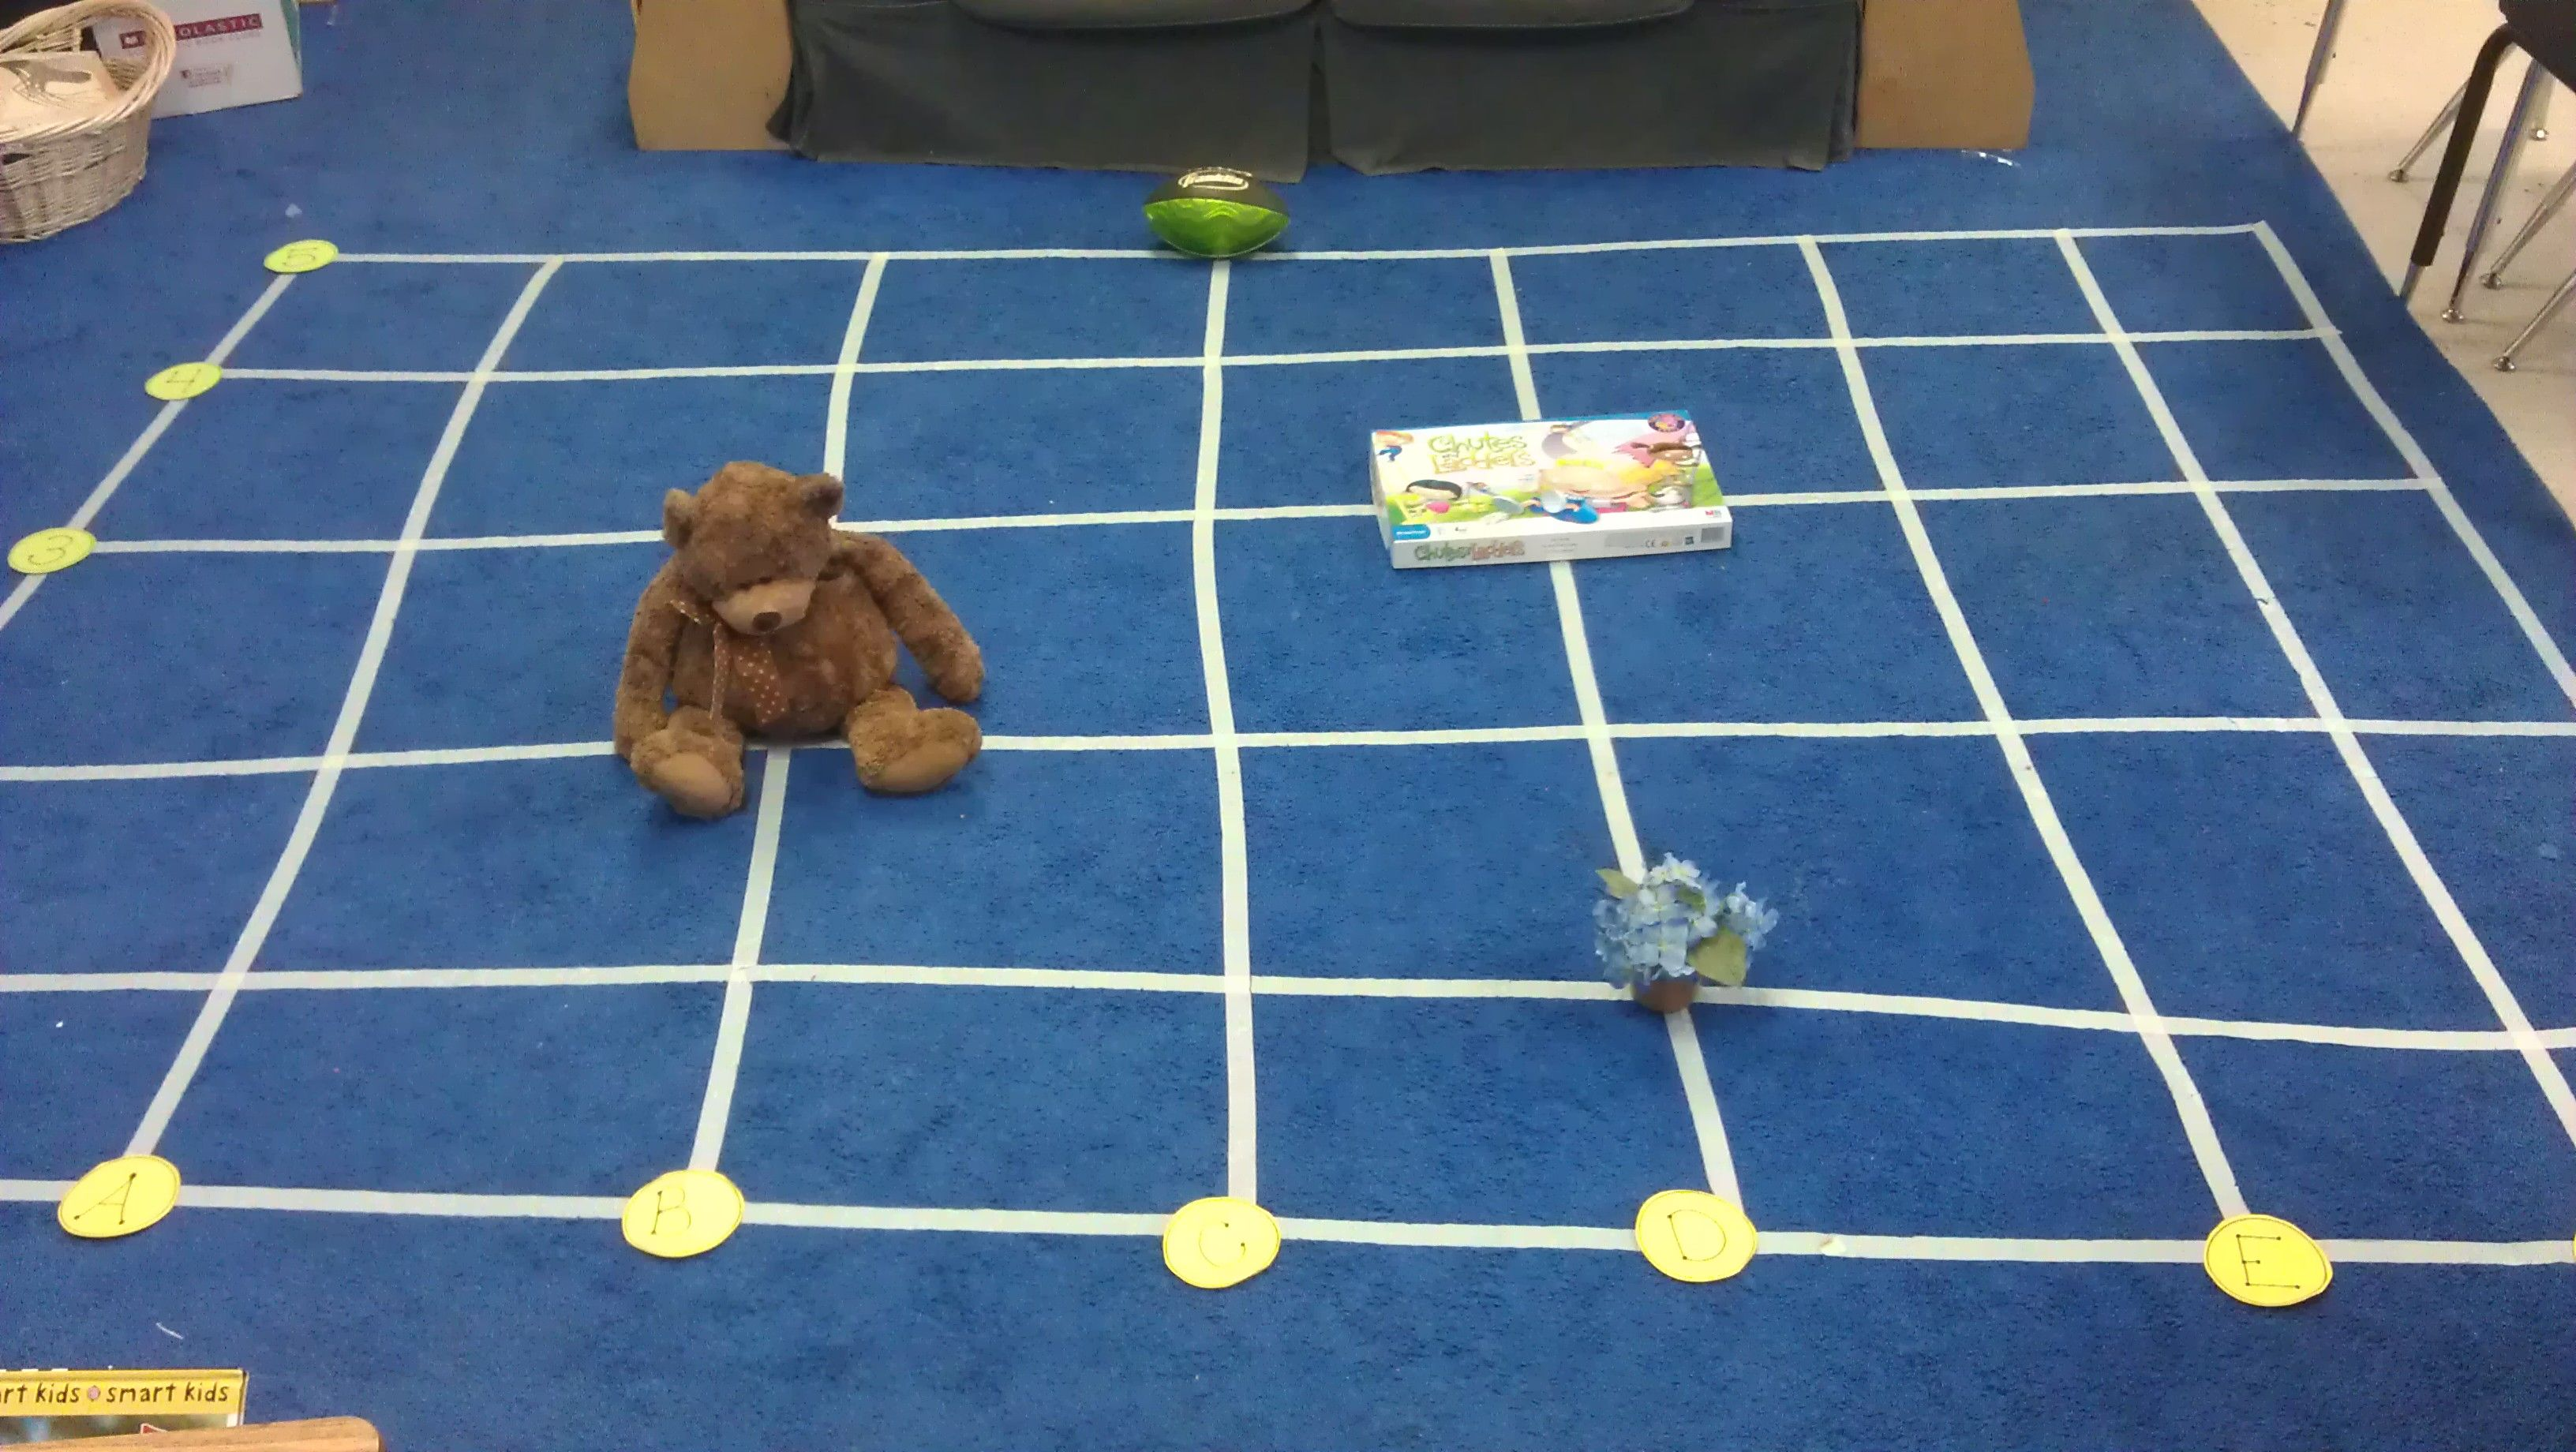 Coordinate Grids Masking Tape The Carpet Into A Grid